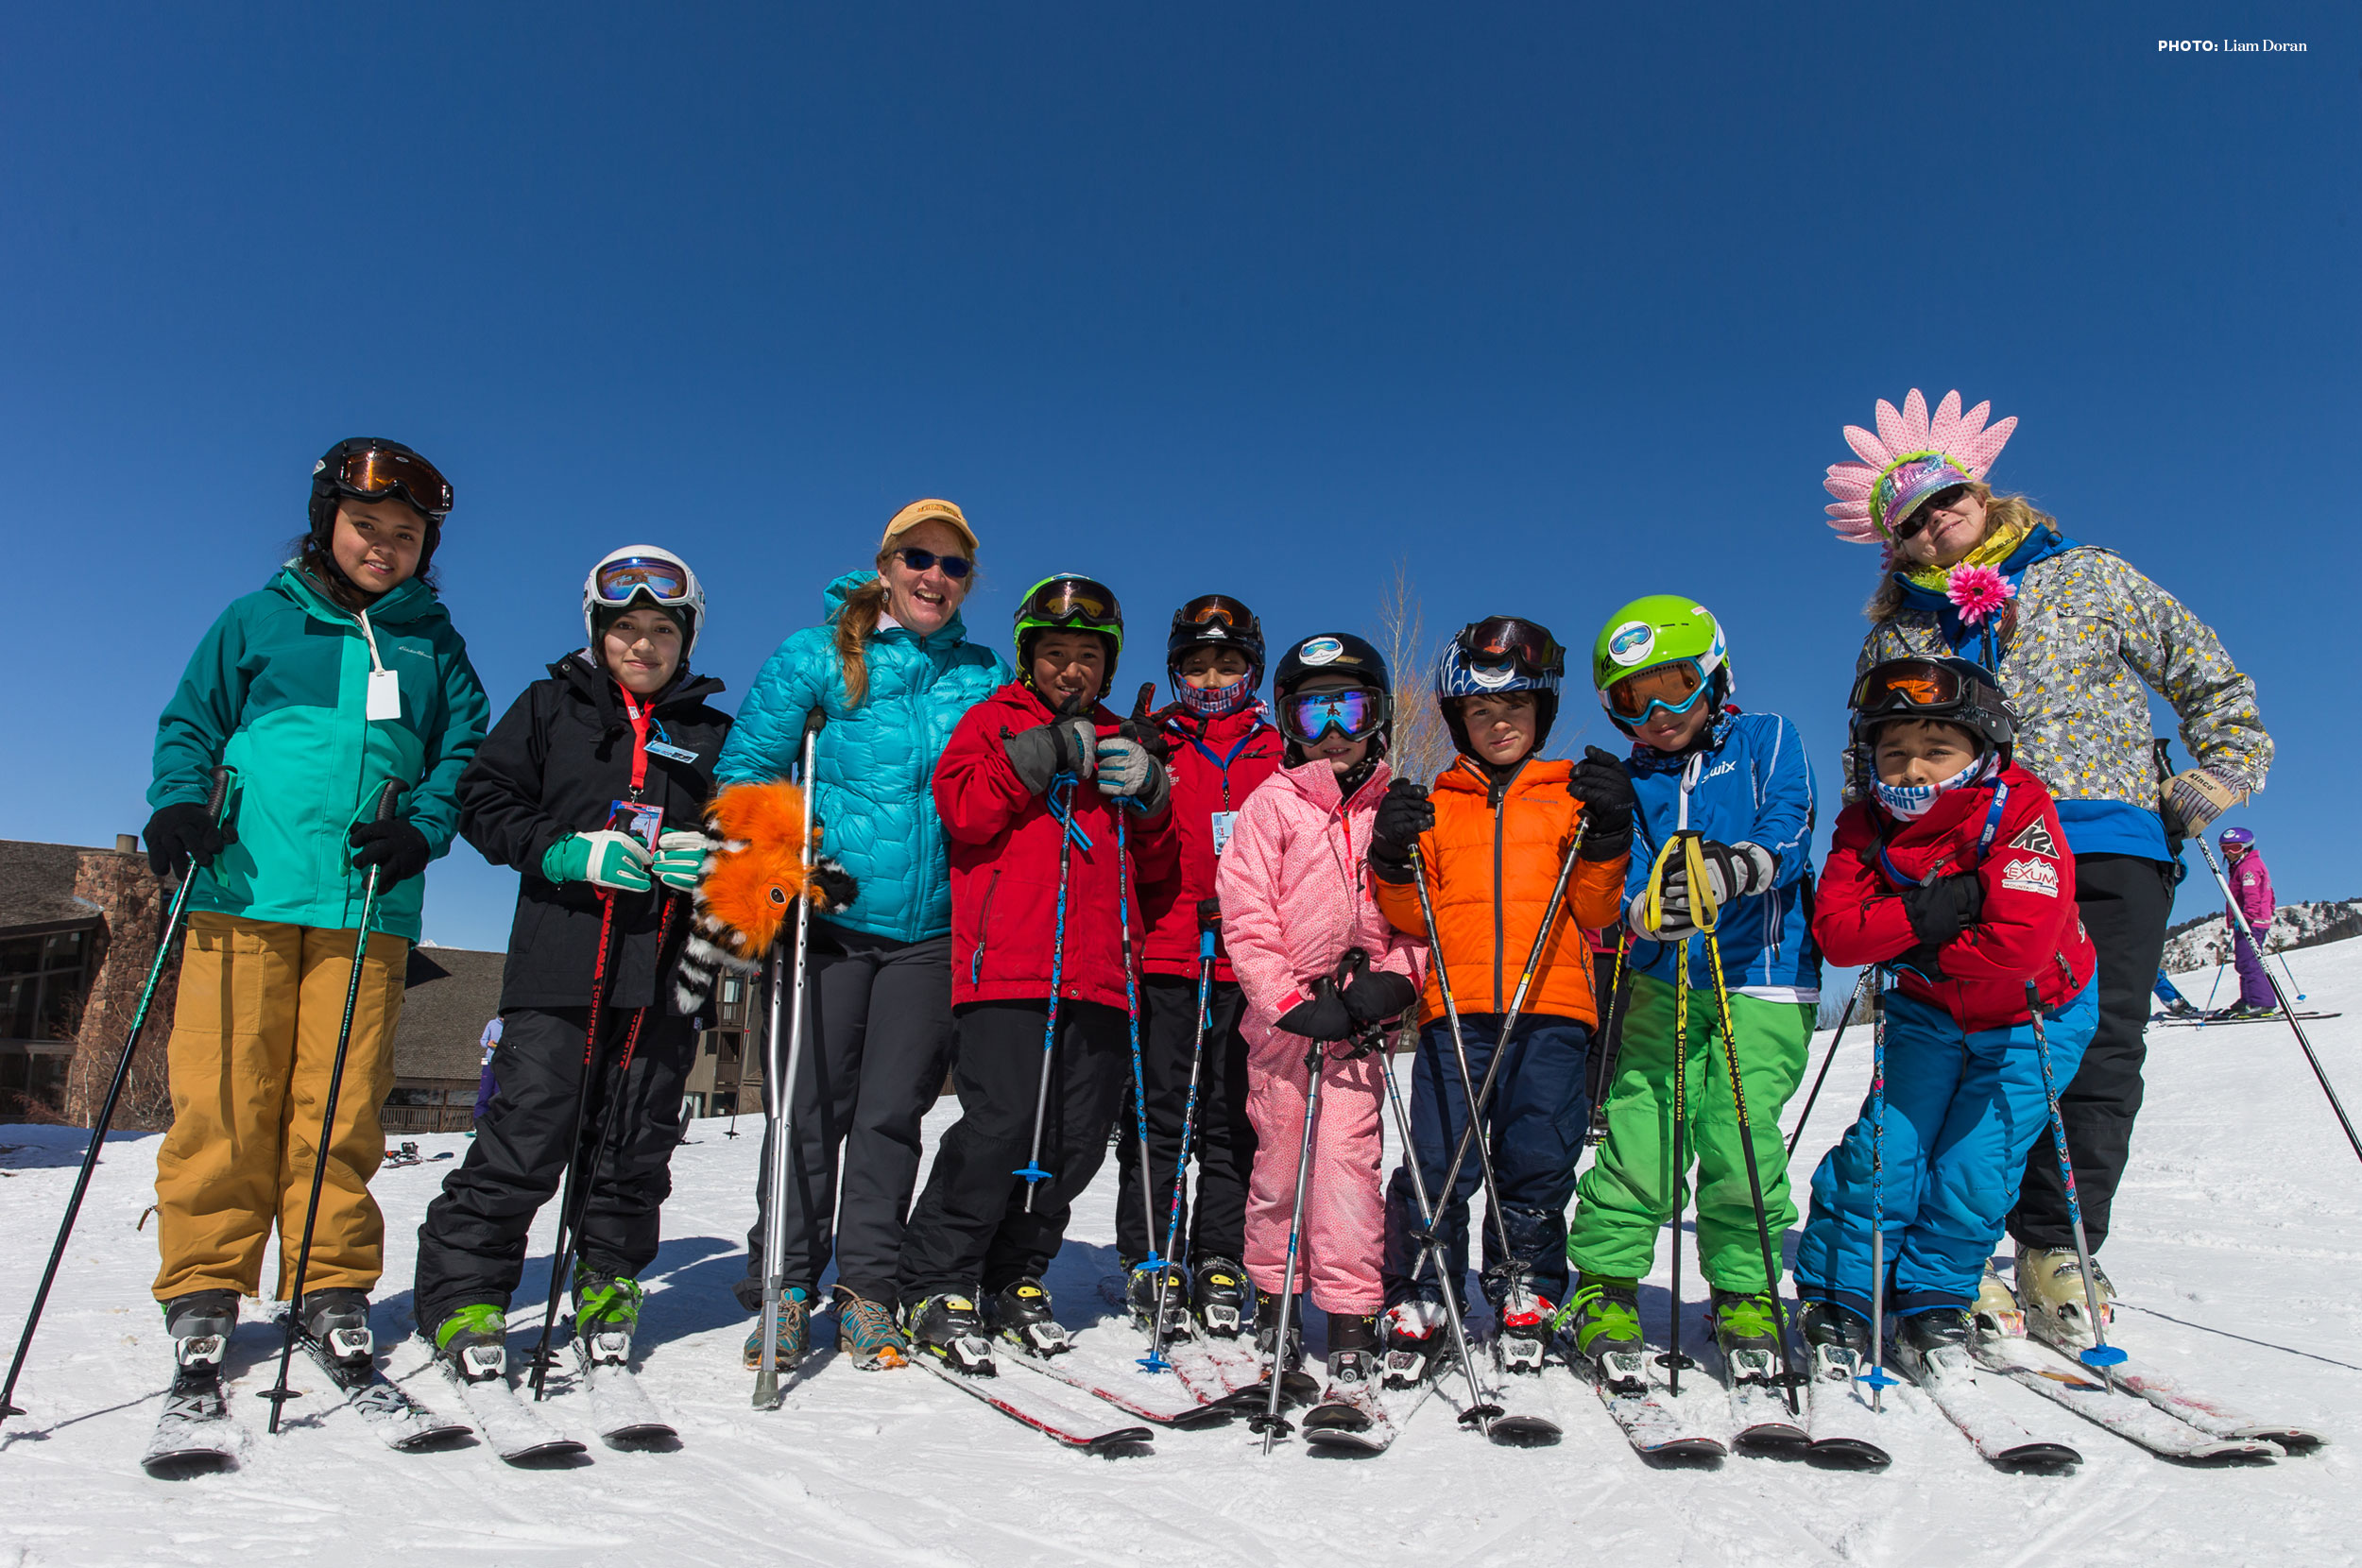 Emily Coombs and kids learning to ski